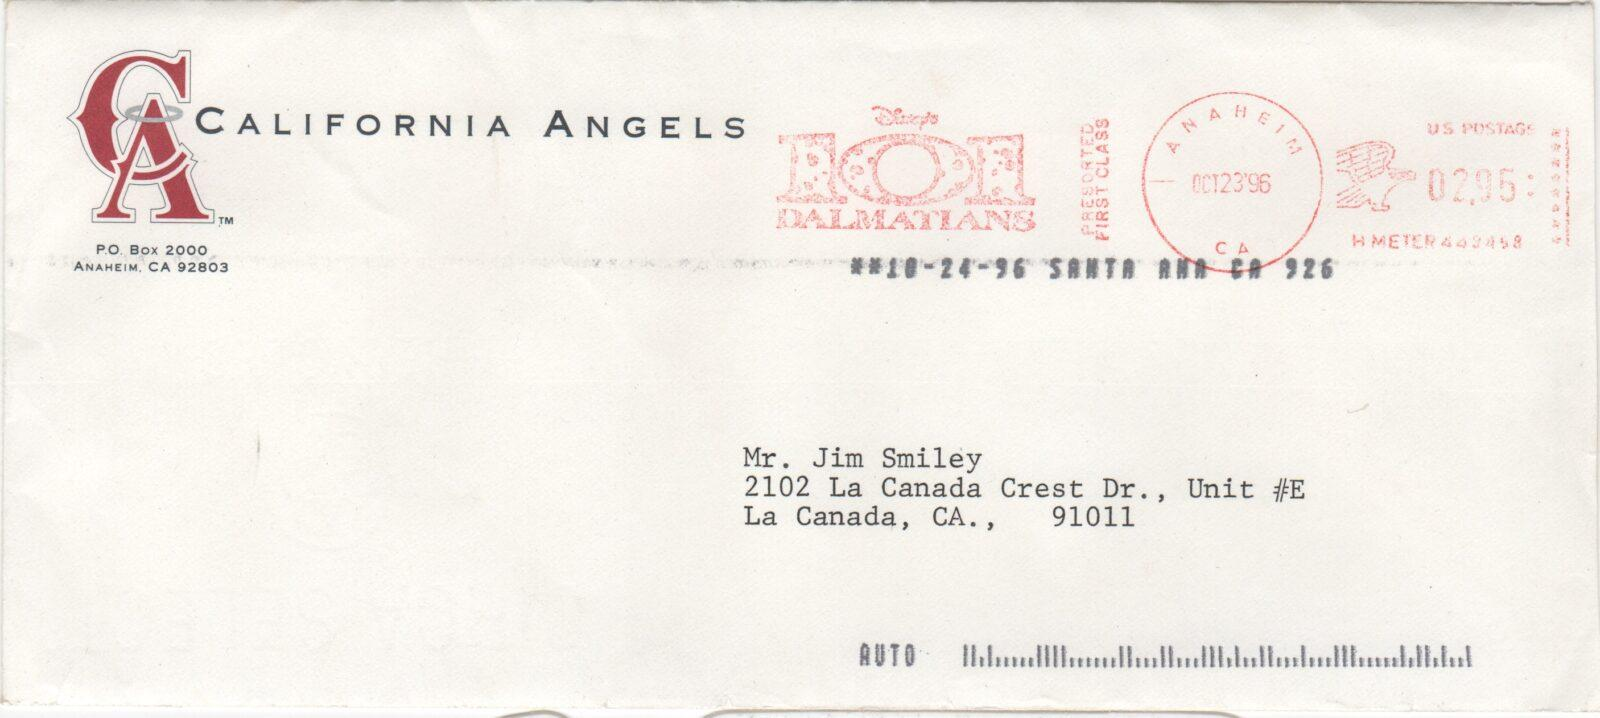 Buzzie bavasi cooperstown expert envelope for the bill bavasi letter about torborg sciox Gallery